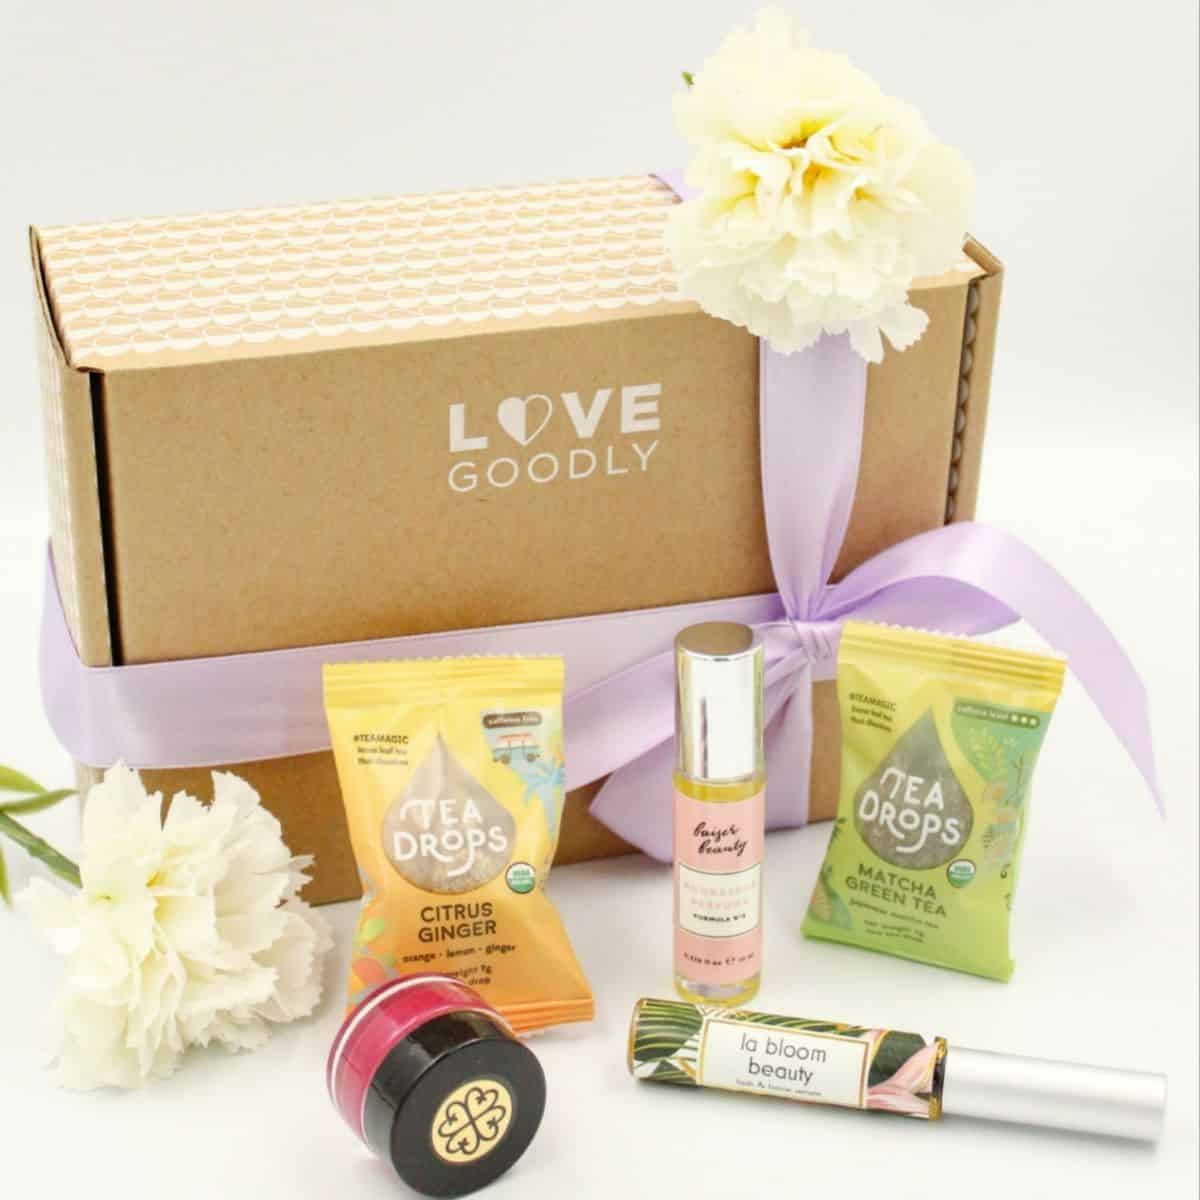 Love Goodly Box with products in front of it